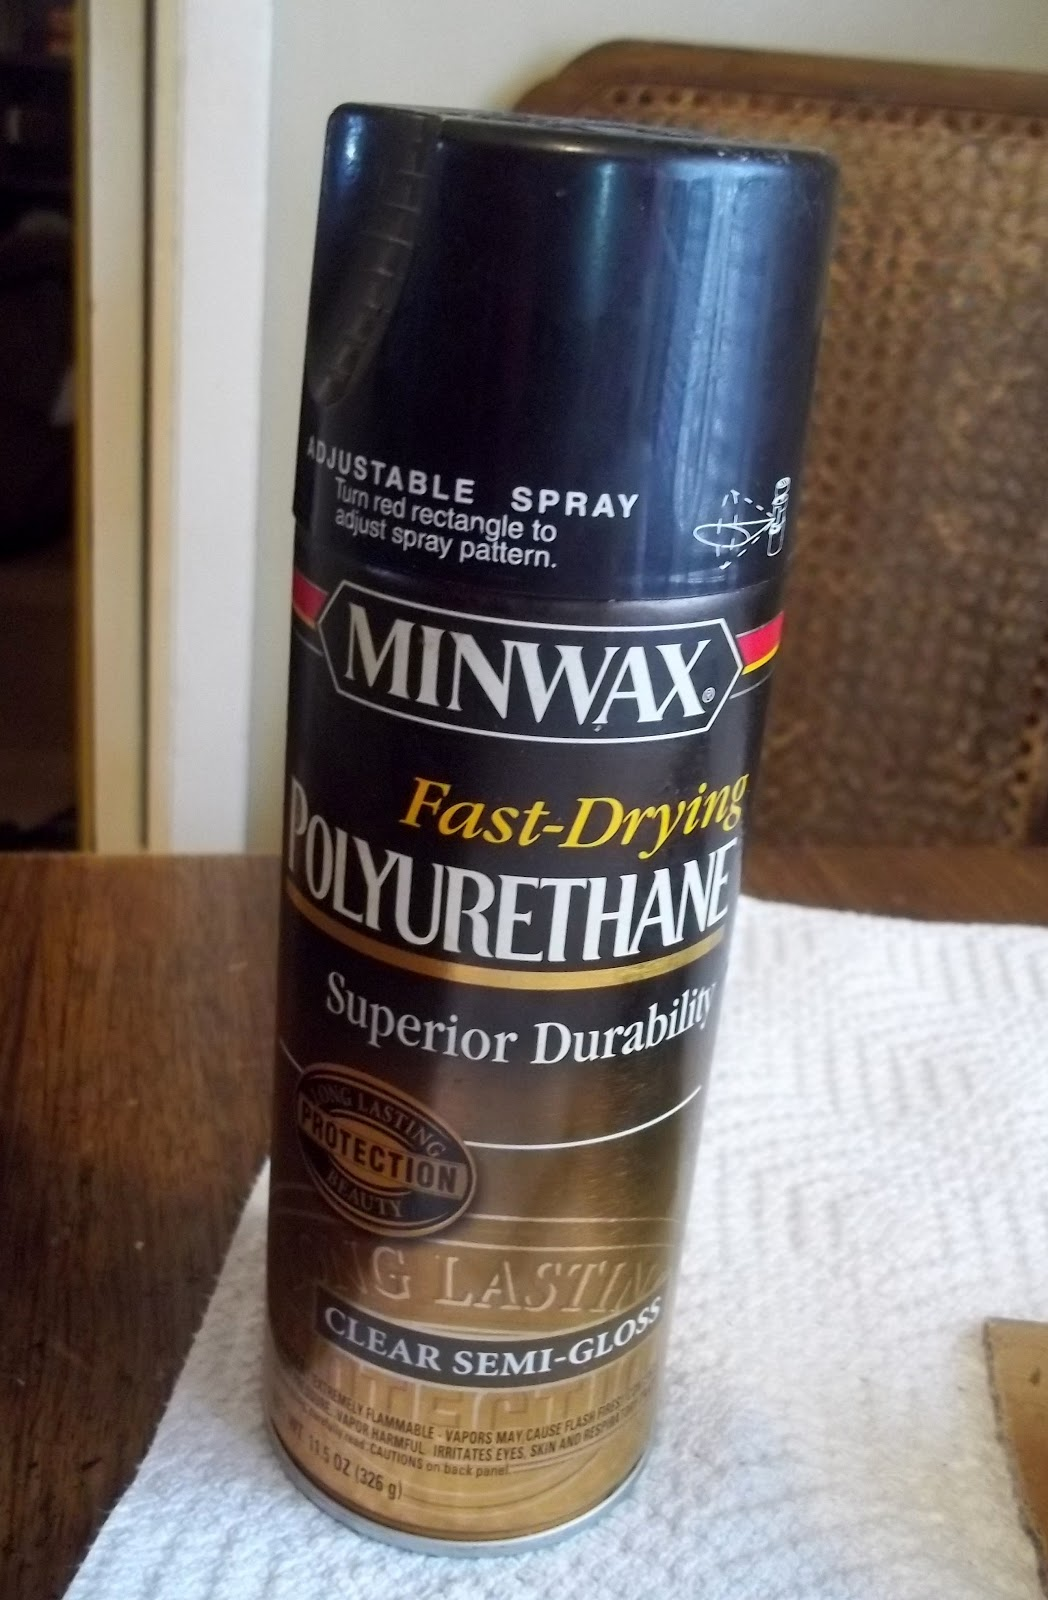 Minwax super fast drying polyurethane - Use Minwax Fast Drying Polyurethane Clear Semi Gloss